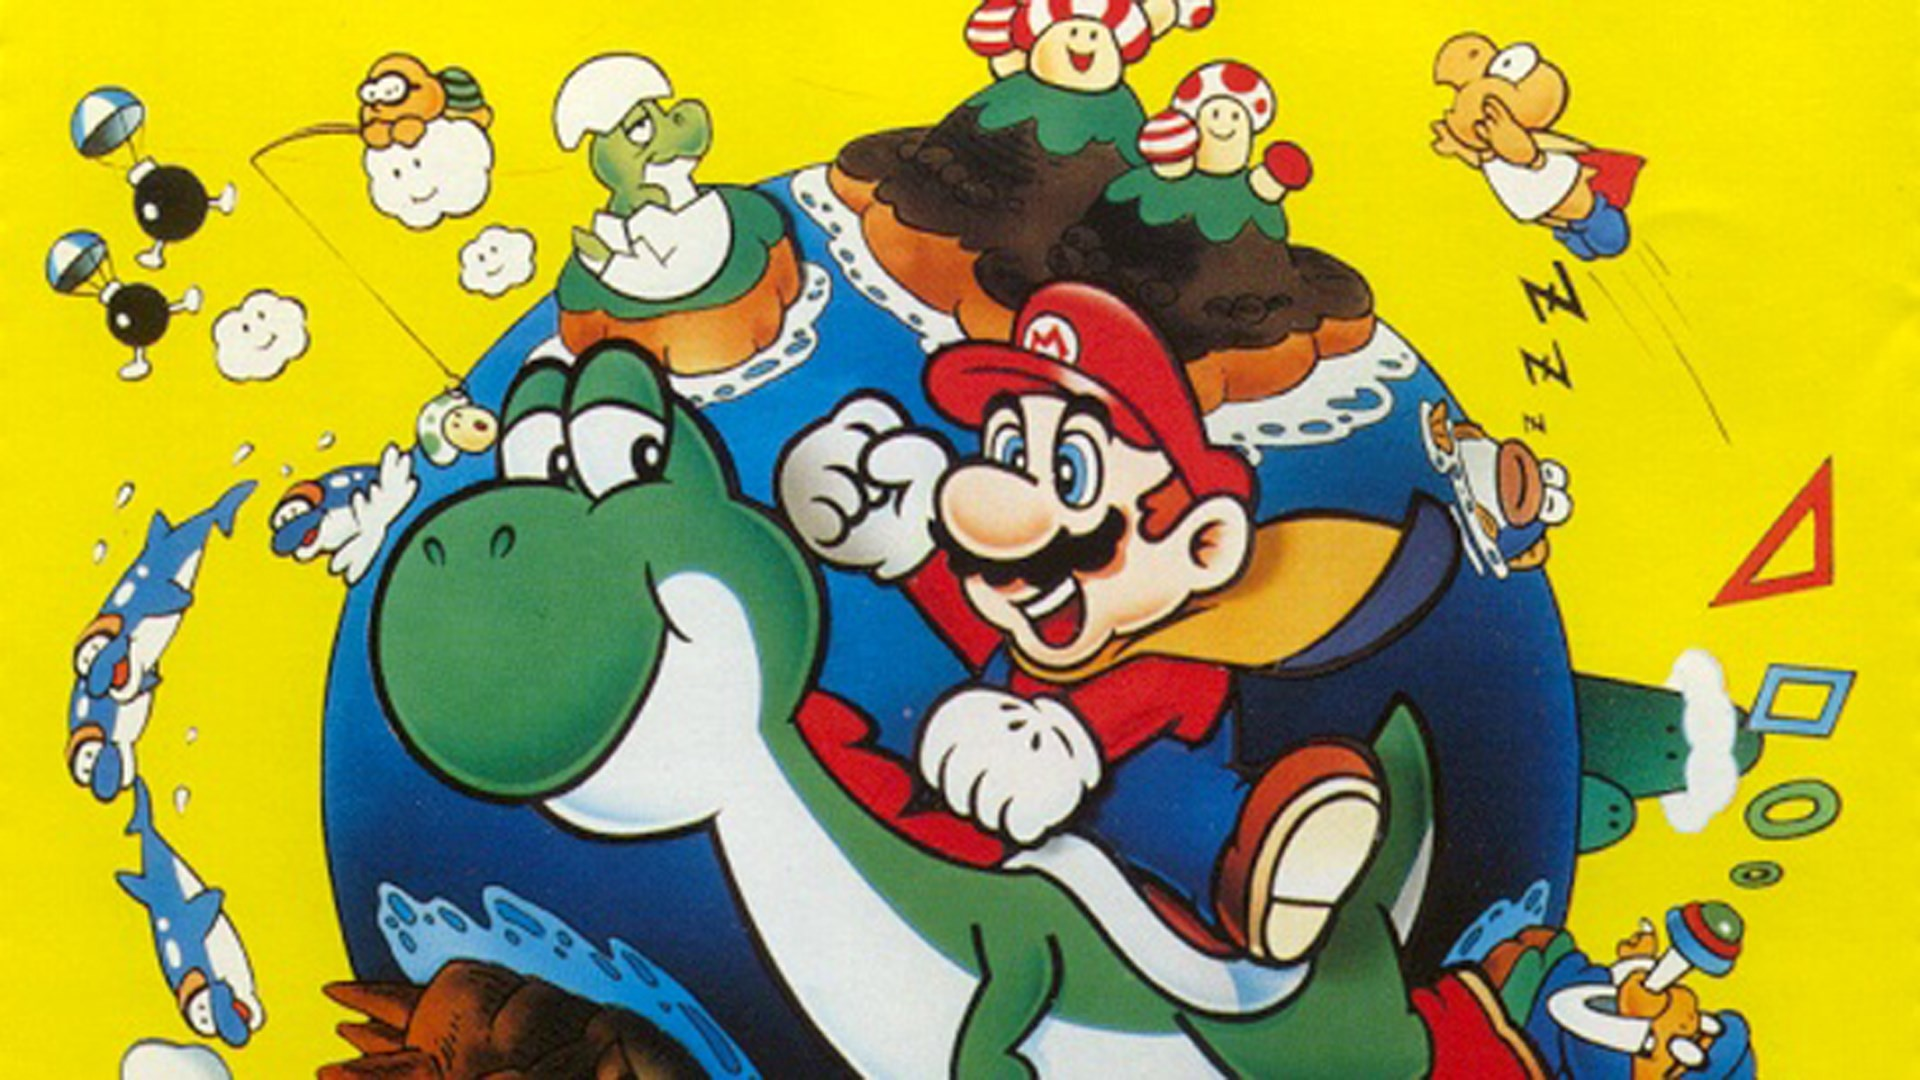 1920x1080 super mario world picture - Full HD Backgrounds (Charleston Turner  )